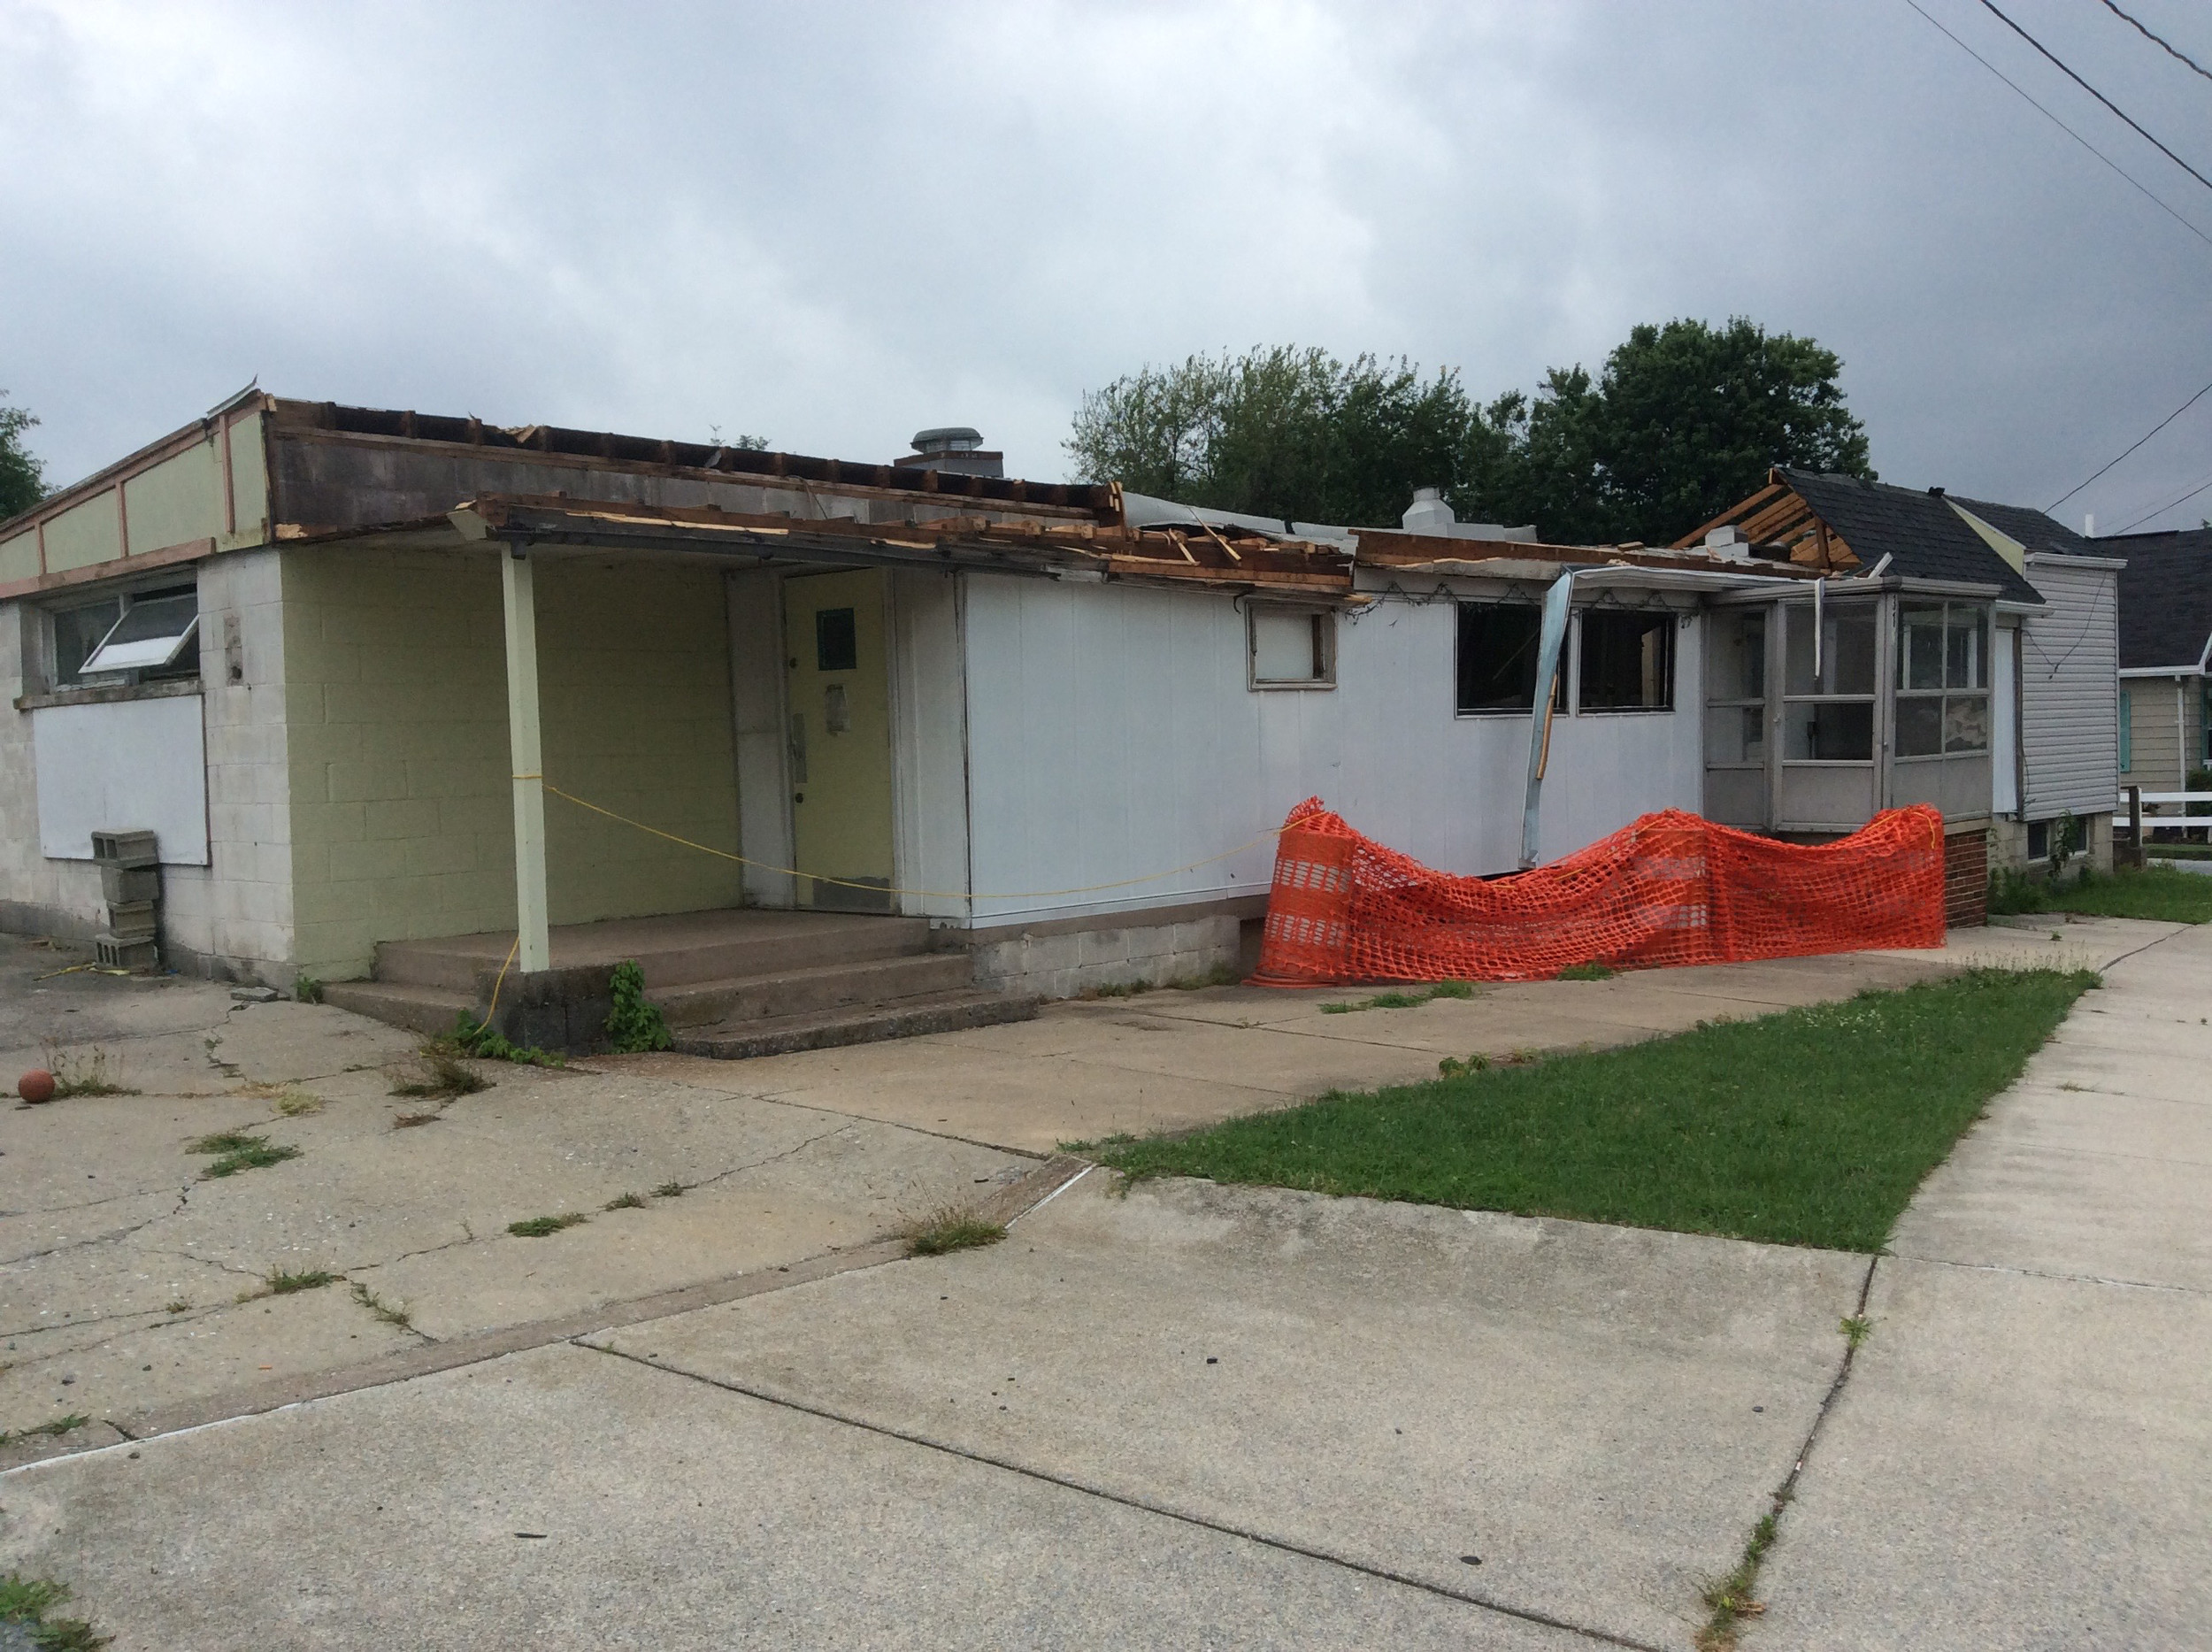 The owners are continuing to demolish the former diner, as shown in this most recent photo from July 6.